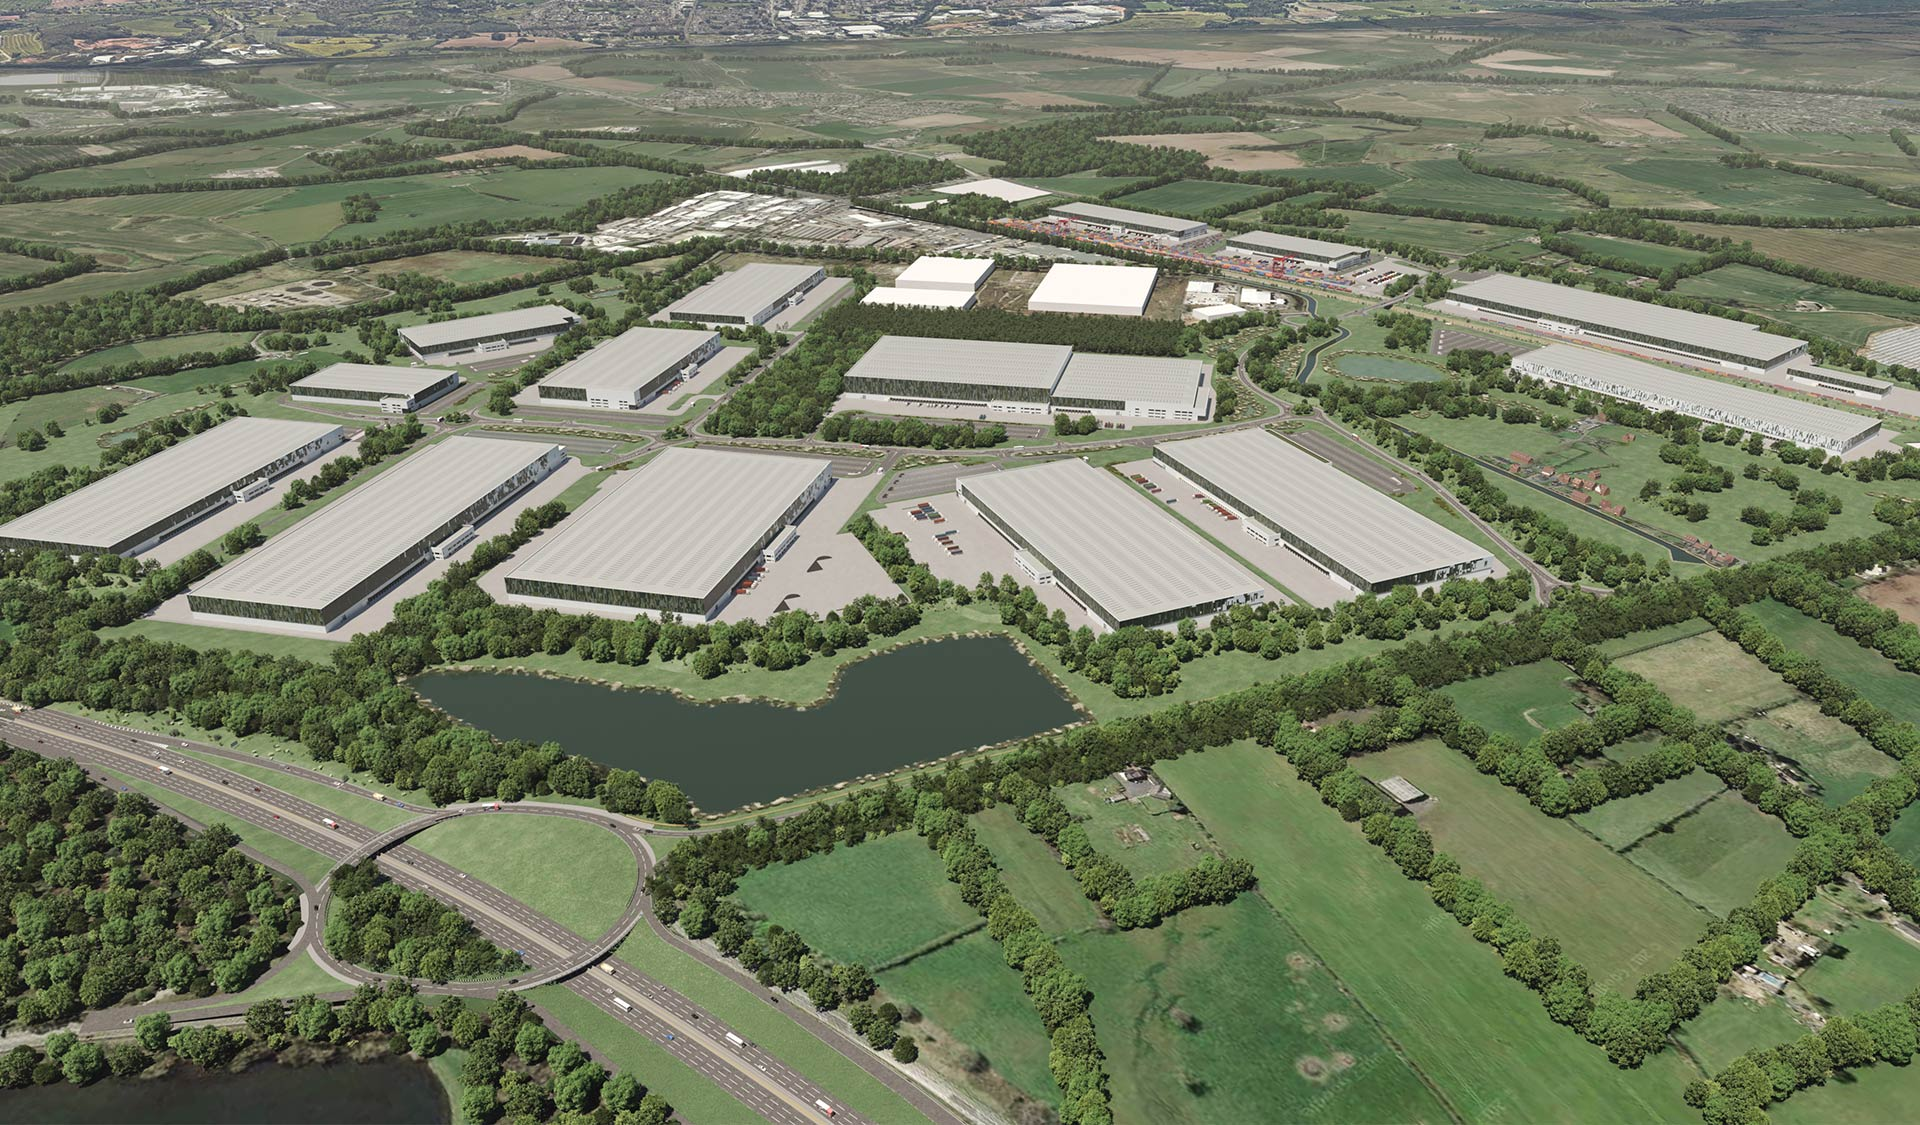 Oxford Properties and Logistics Capital Partners form JV to acquire and develop UK's largest logistics site